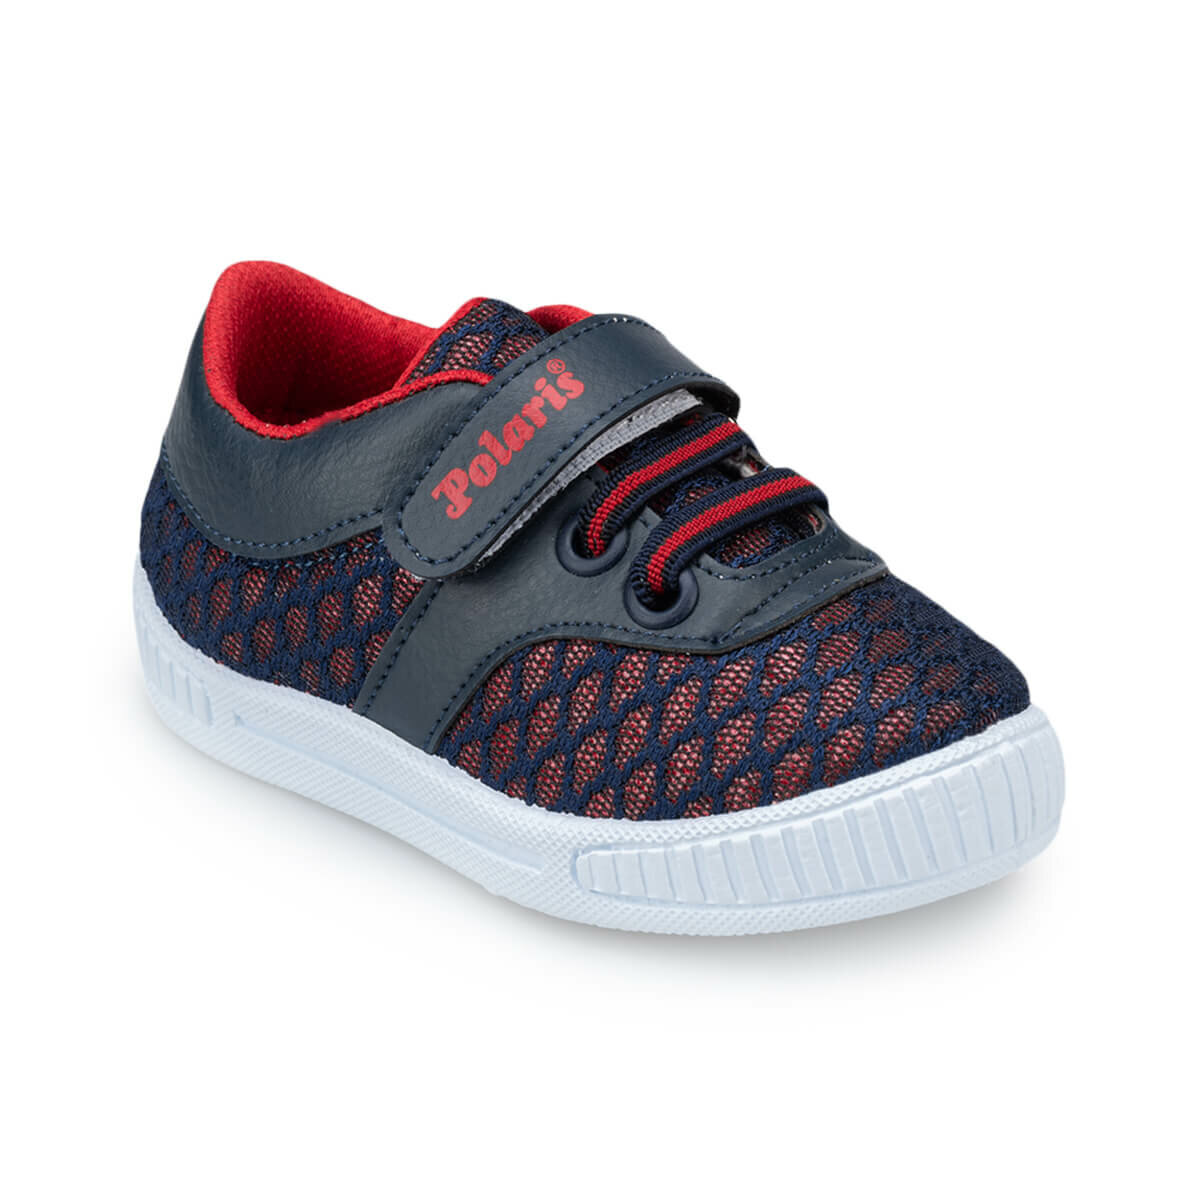 FLO 91.511066.B Red Male Child Sneaker Shoes Polaris